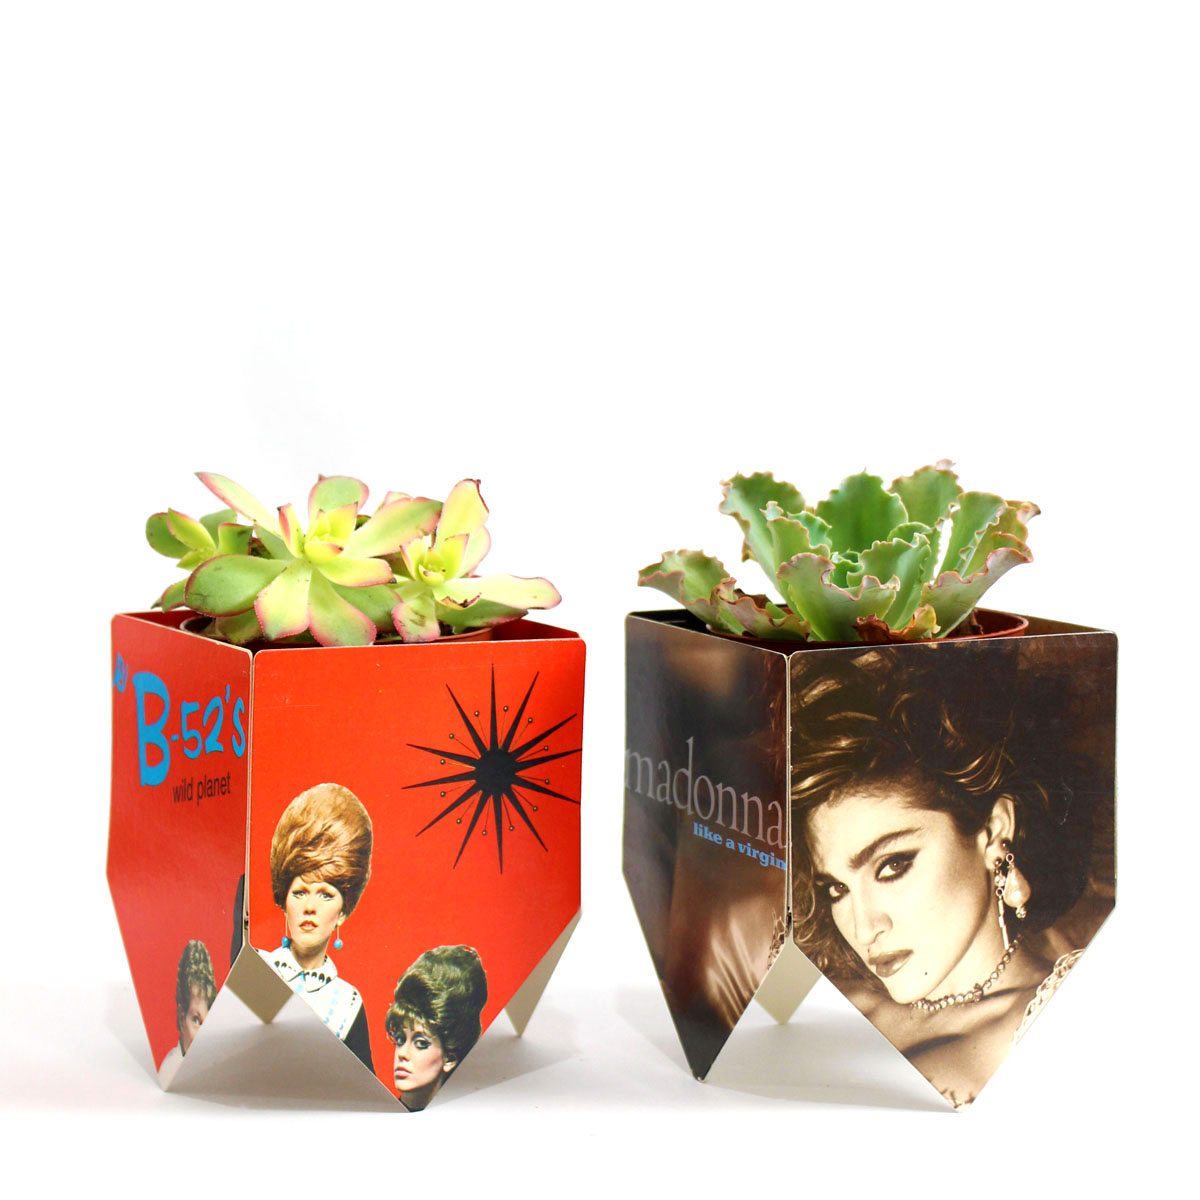 Record album cover plant stands jonathan fong style i love succulents and somehow regular terra cotta pots dont do them justice so i decided to make plant stands for the succulents using album covers mightylinksfo